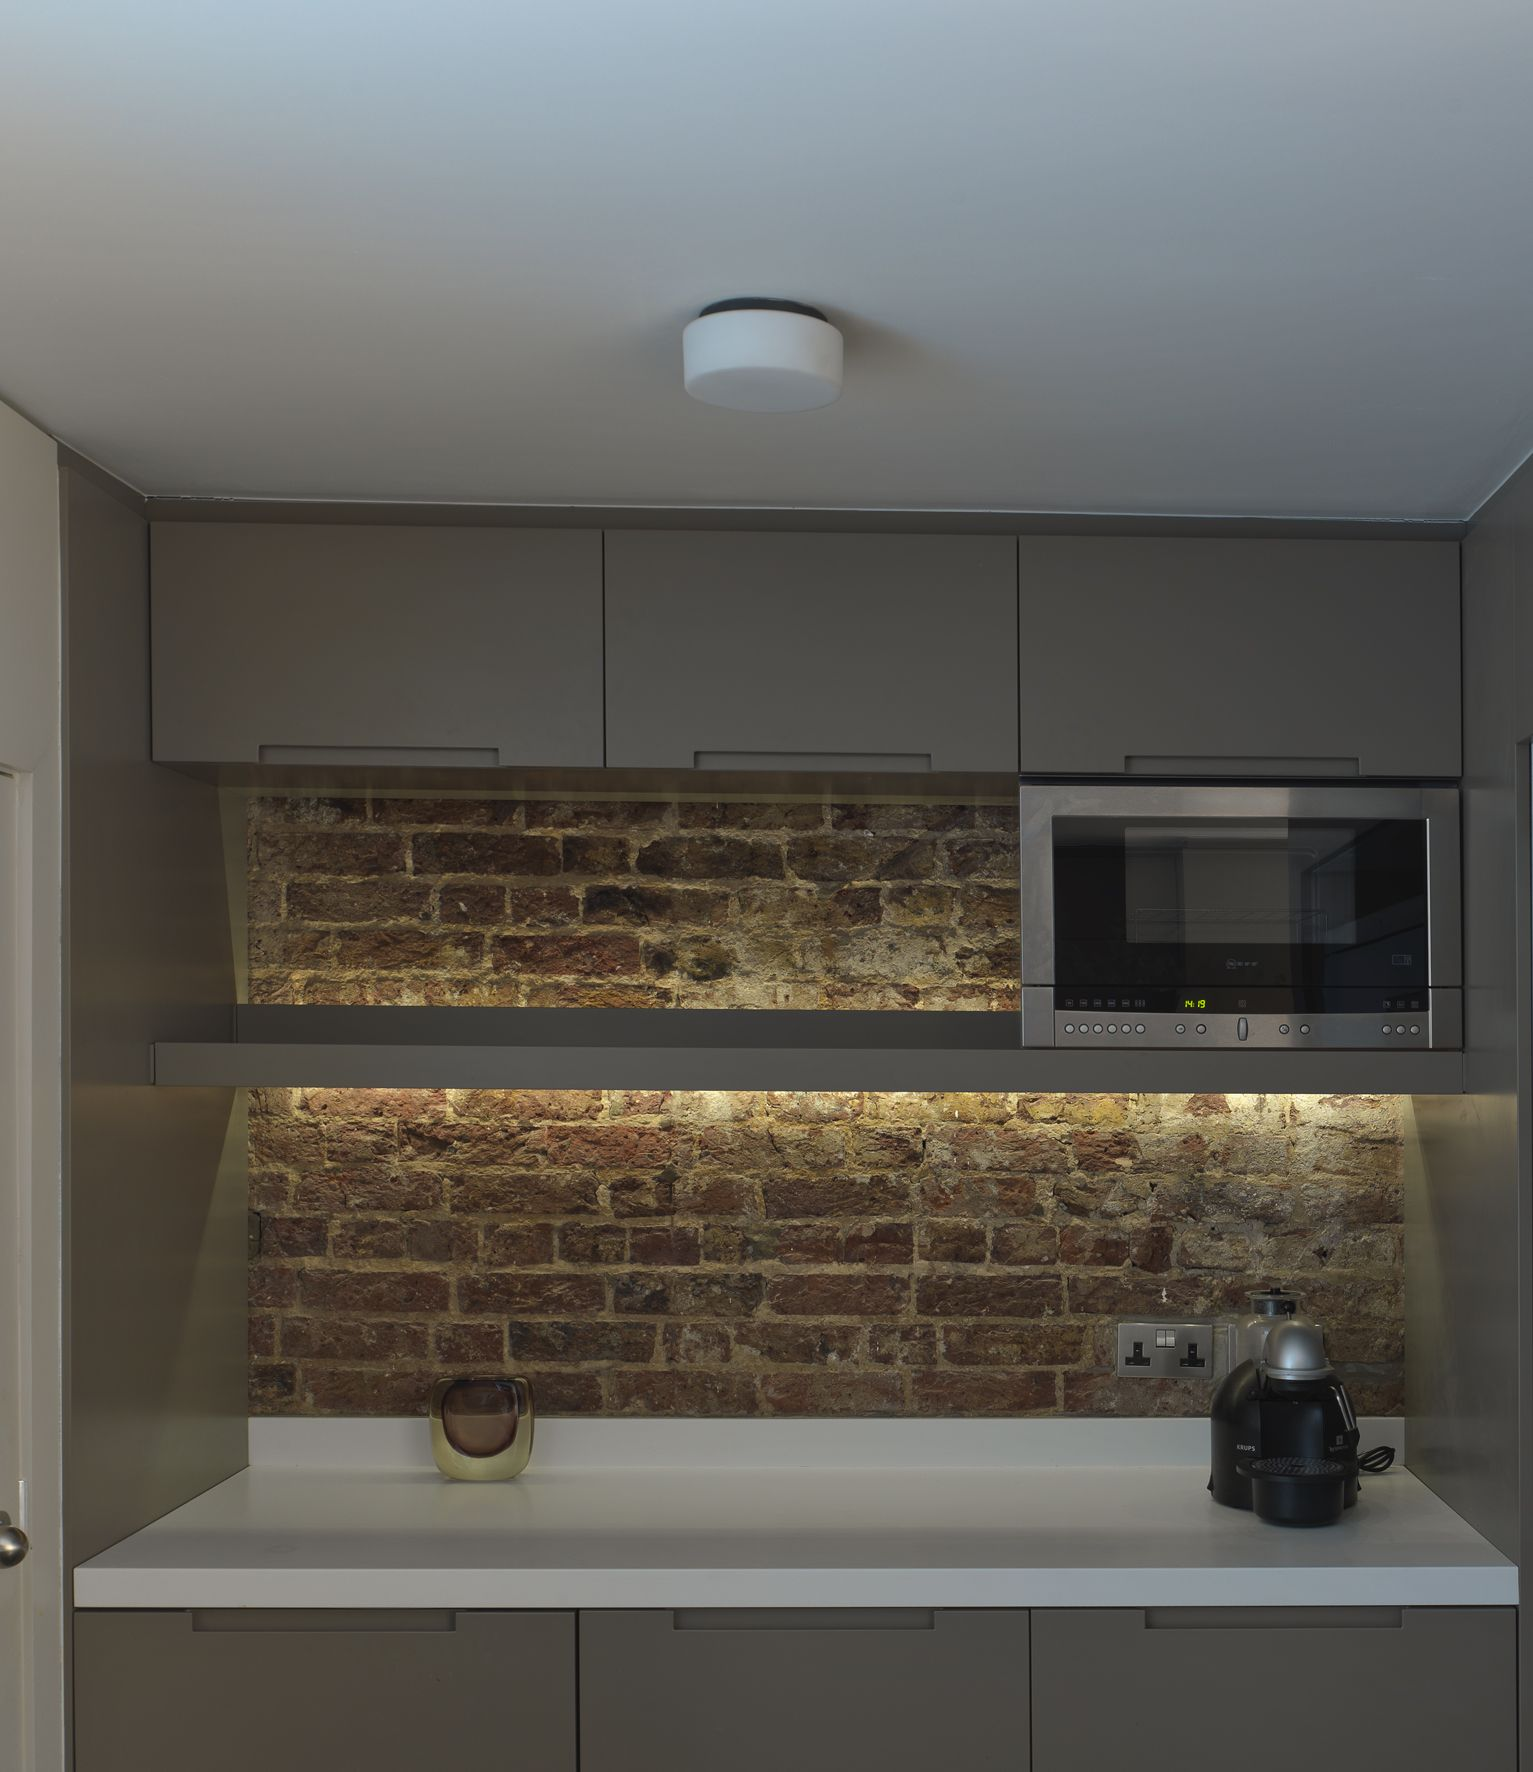 Victorian Basement: Victorian House: Basement Kitchen Wall With Exposed